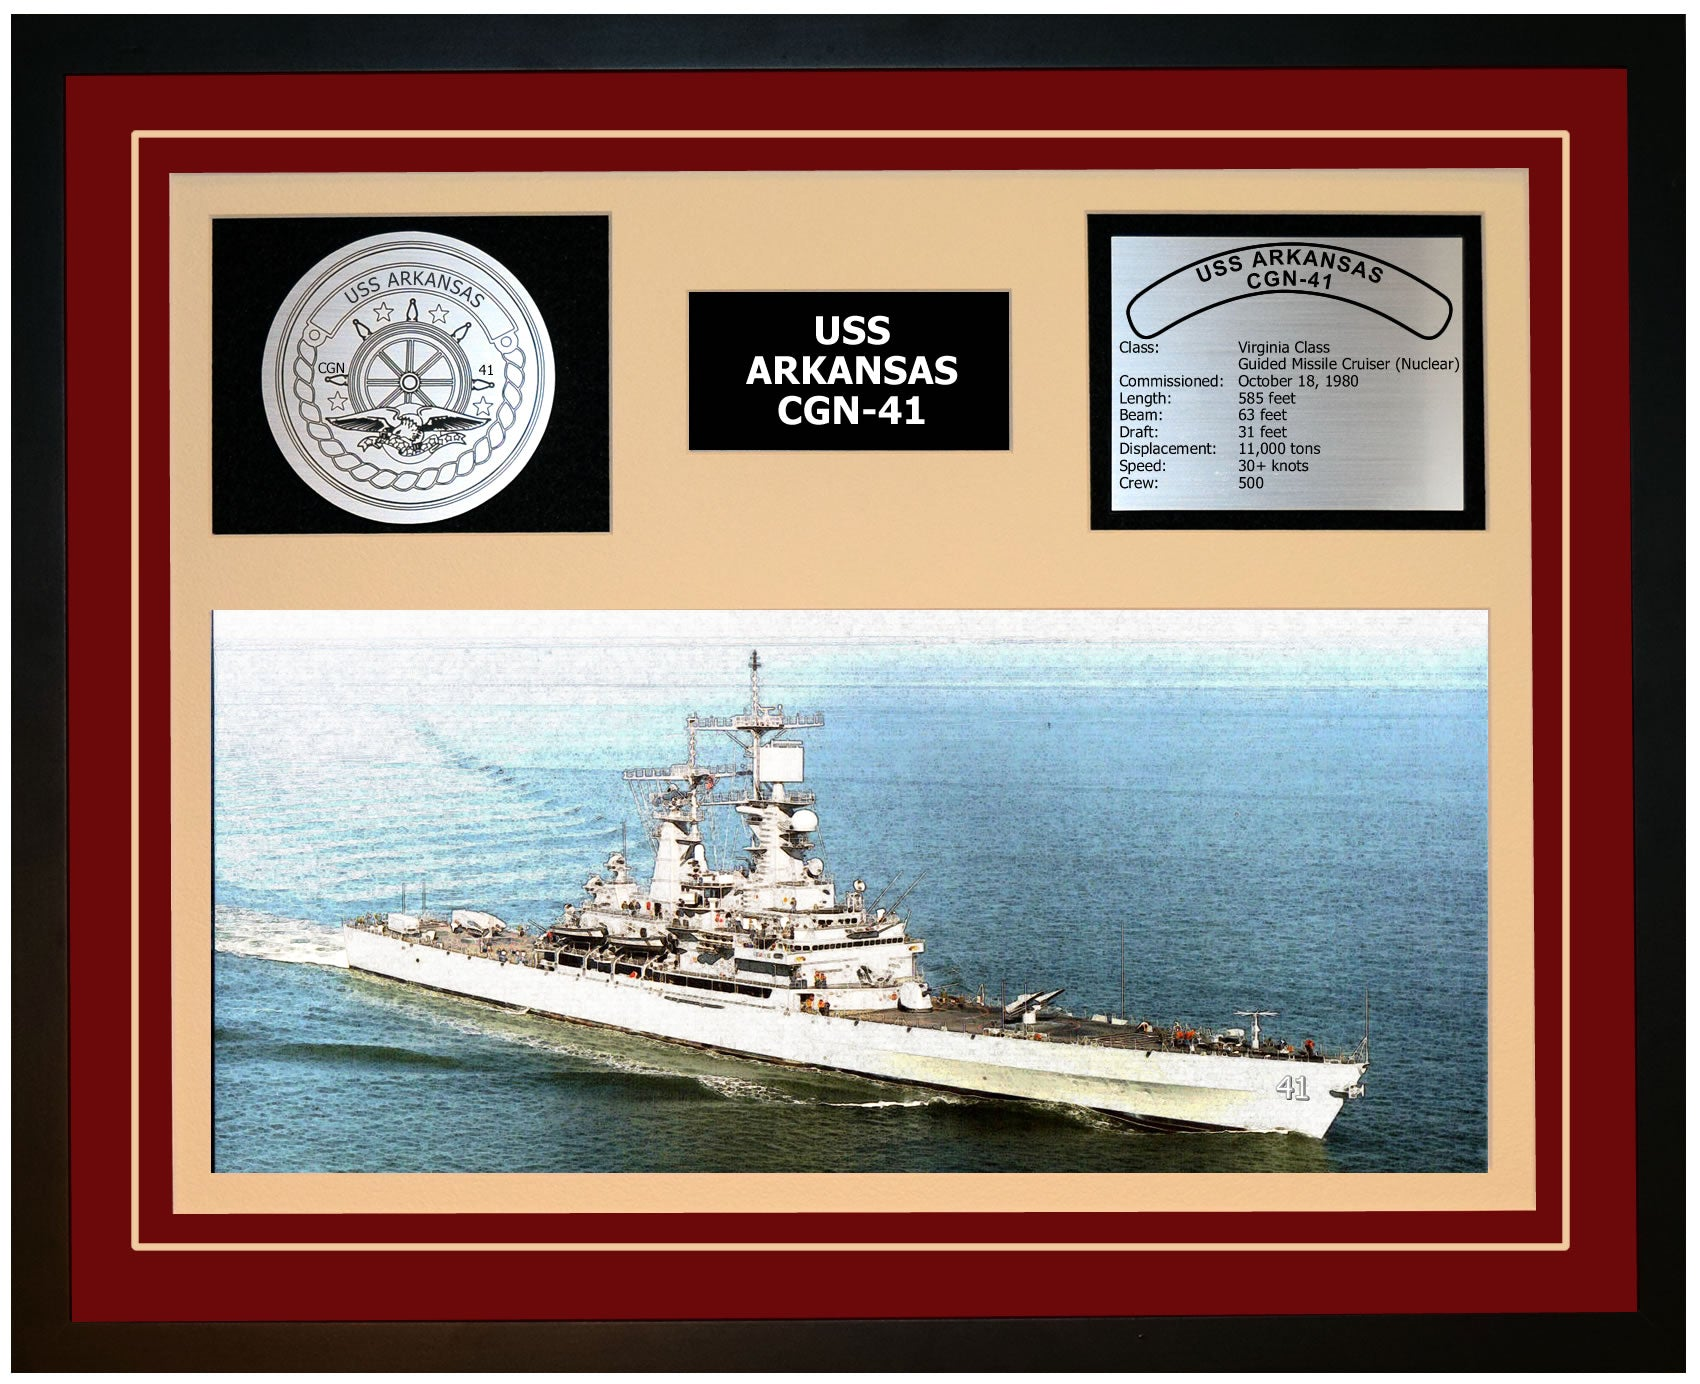 USS ARKANSAS CGN-41 Framed Navy Ship Display Burgundy